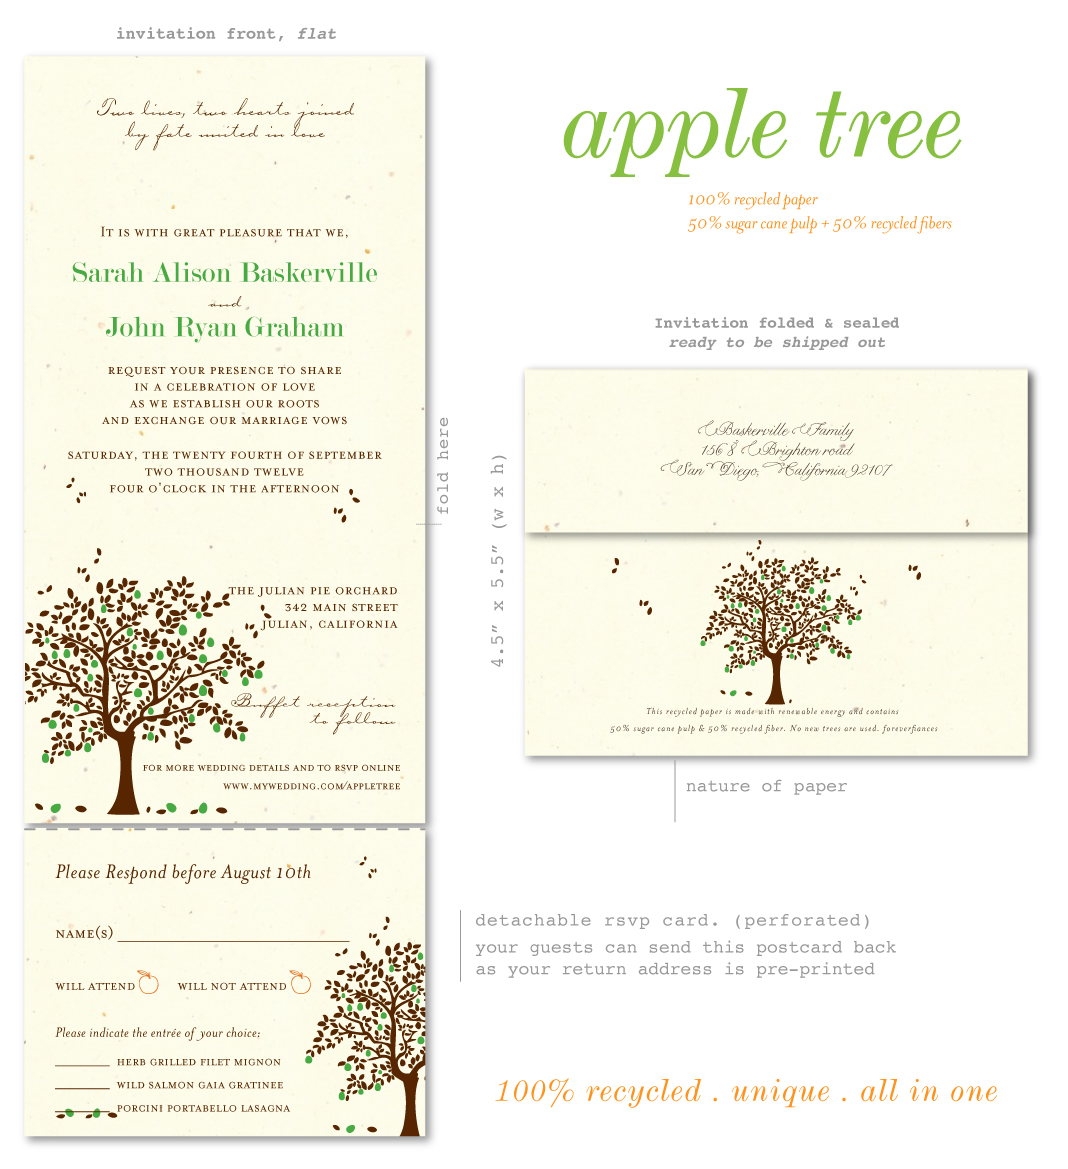 Send n Sealed Wedding invitations on 100% Recycled Paper - Apple ...